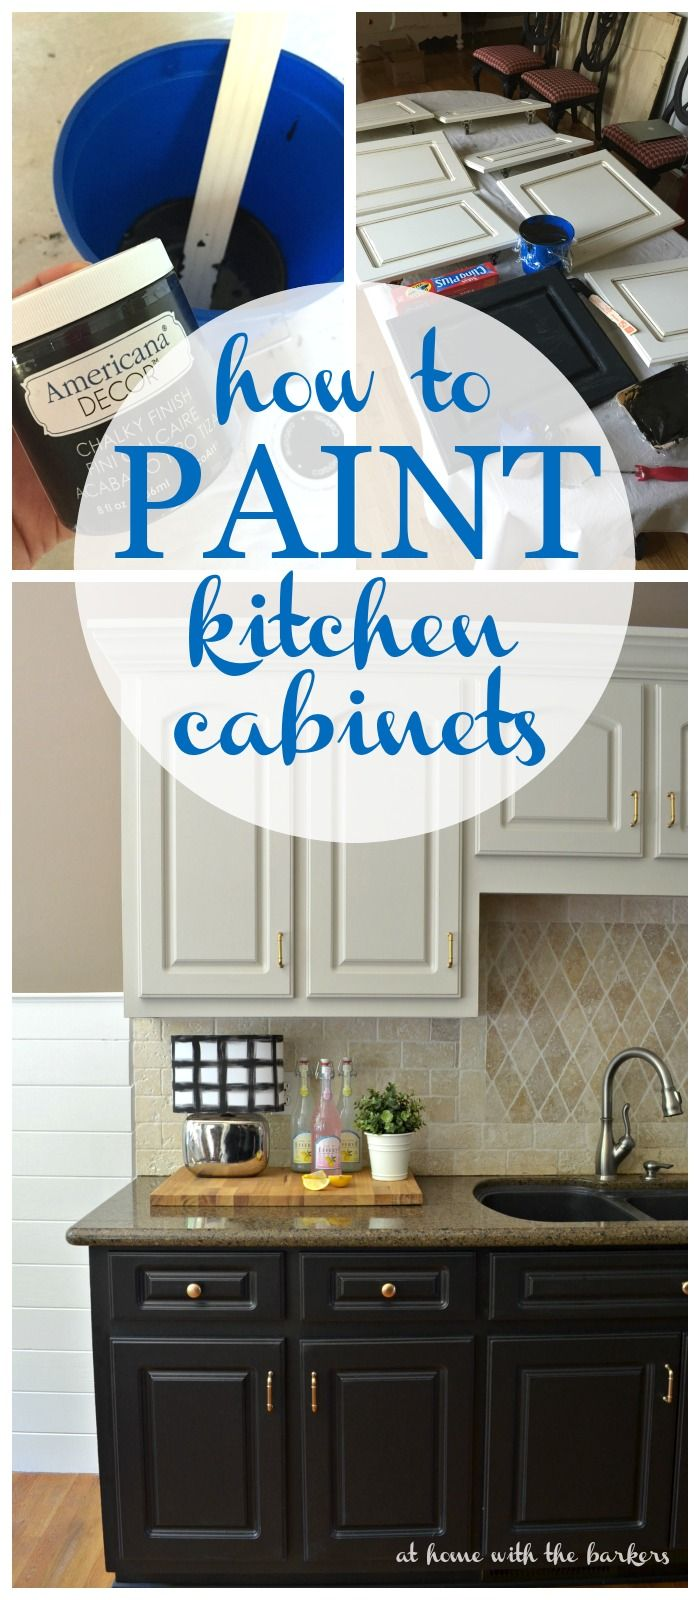 Best 25+ How to paint kitchens ideas on Pinterest